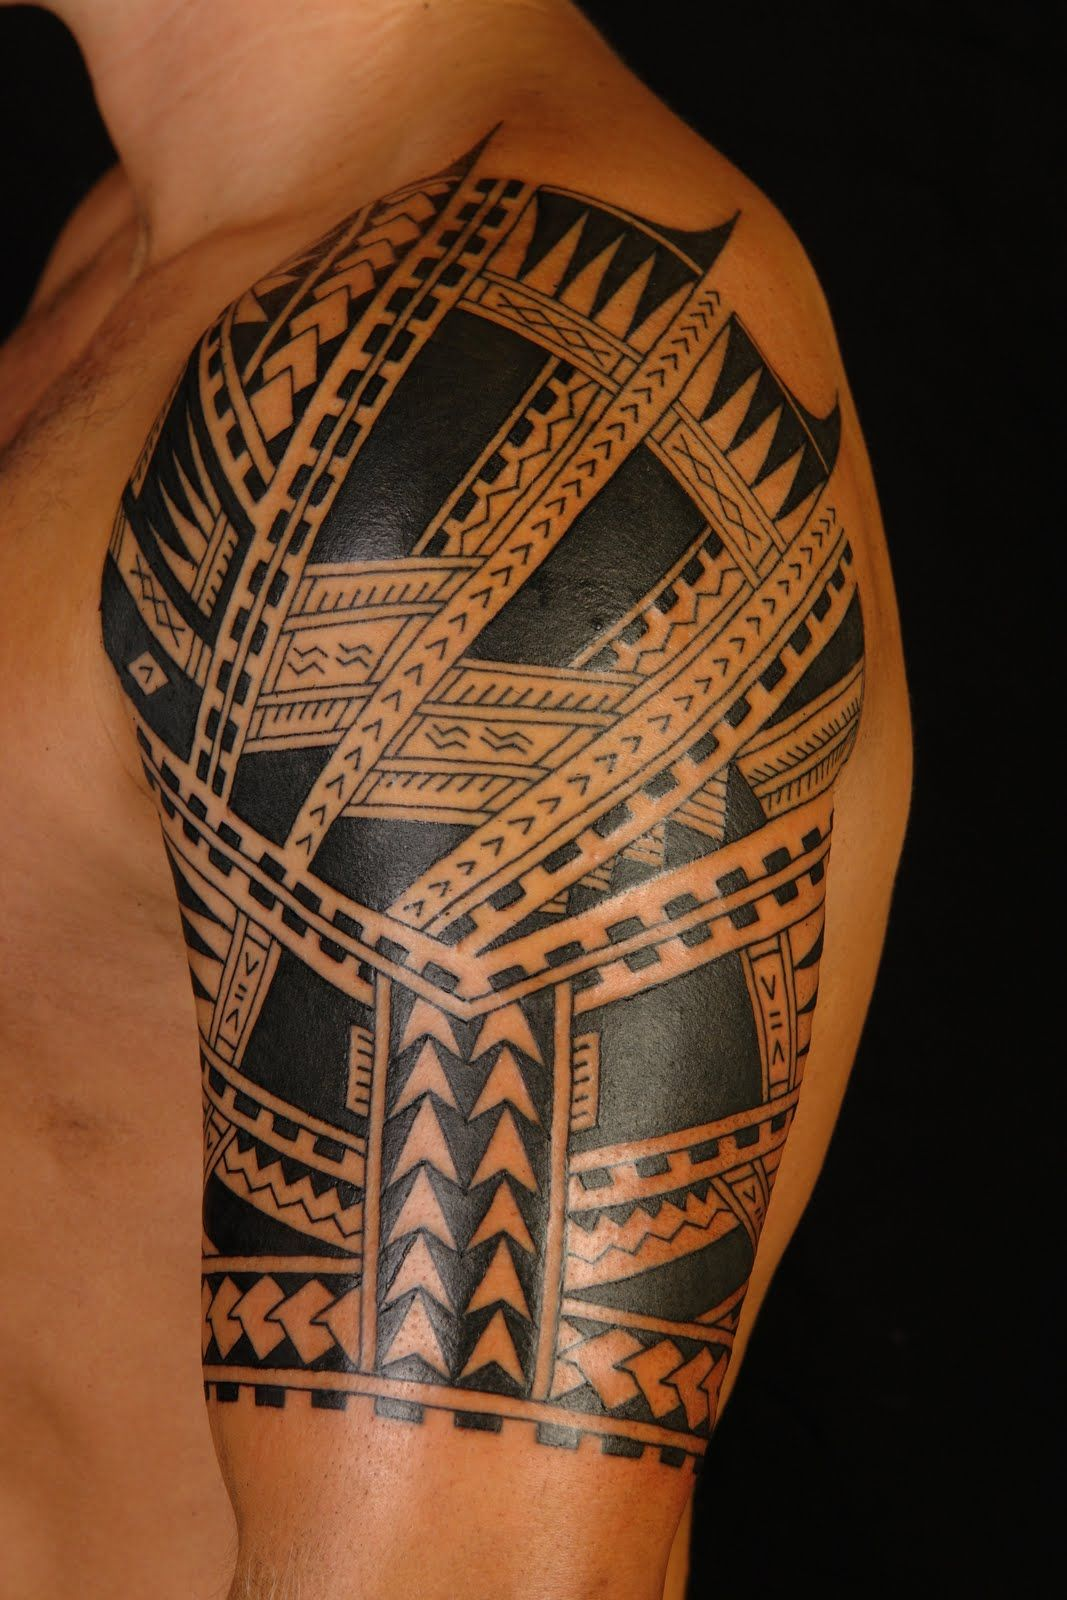 55 Best Maori Tattoo Designs Meanings: Maori Tattoo Sleeve Design